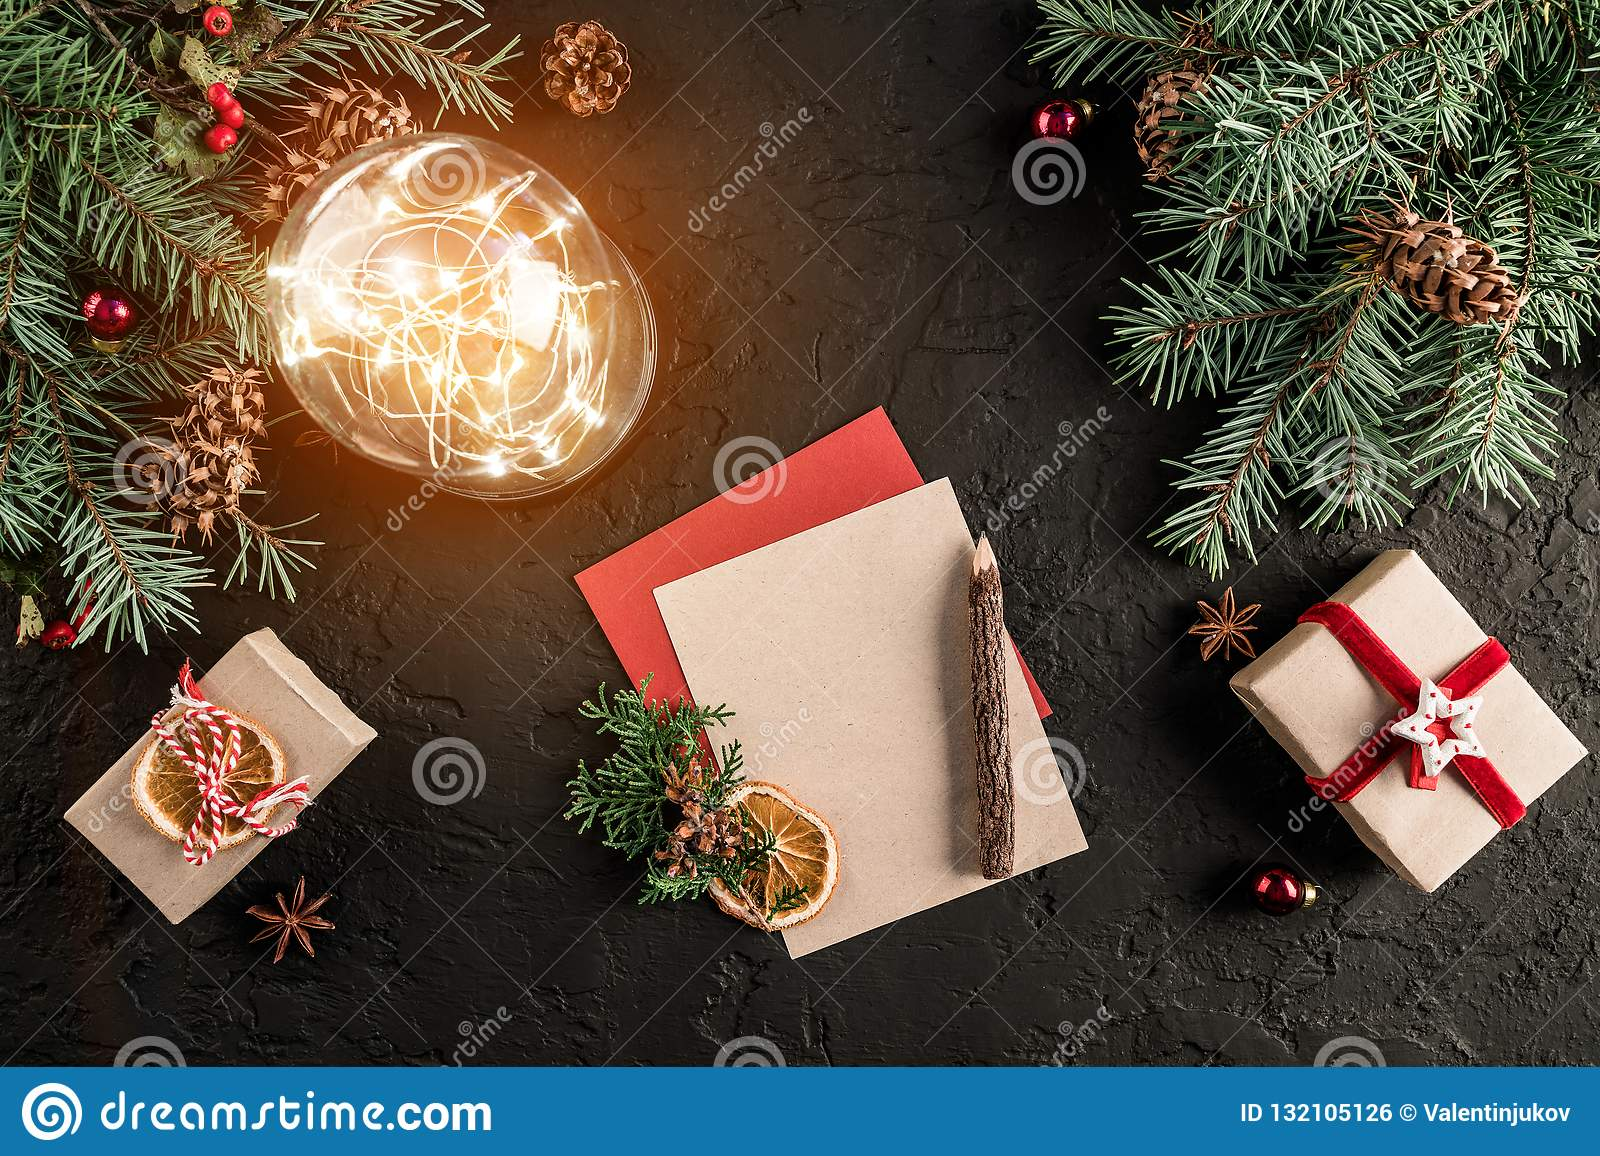 Christmas letter for Santa on dark background with gifts, fir branches, pine cones, glowing ball. Xmas and Happy New Year theme.